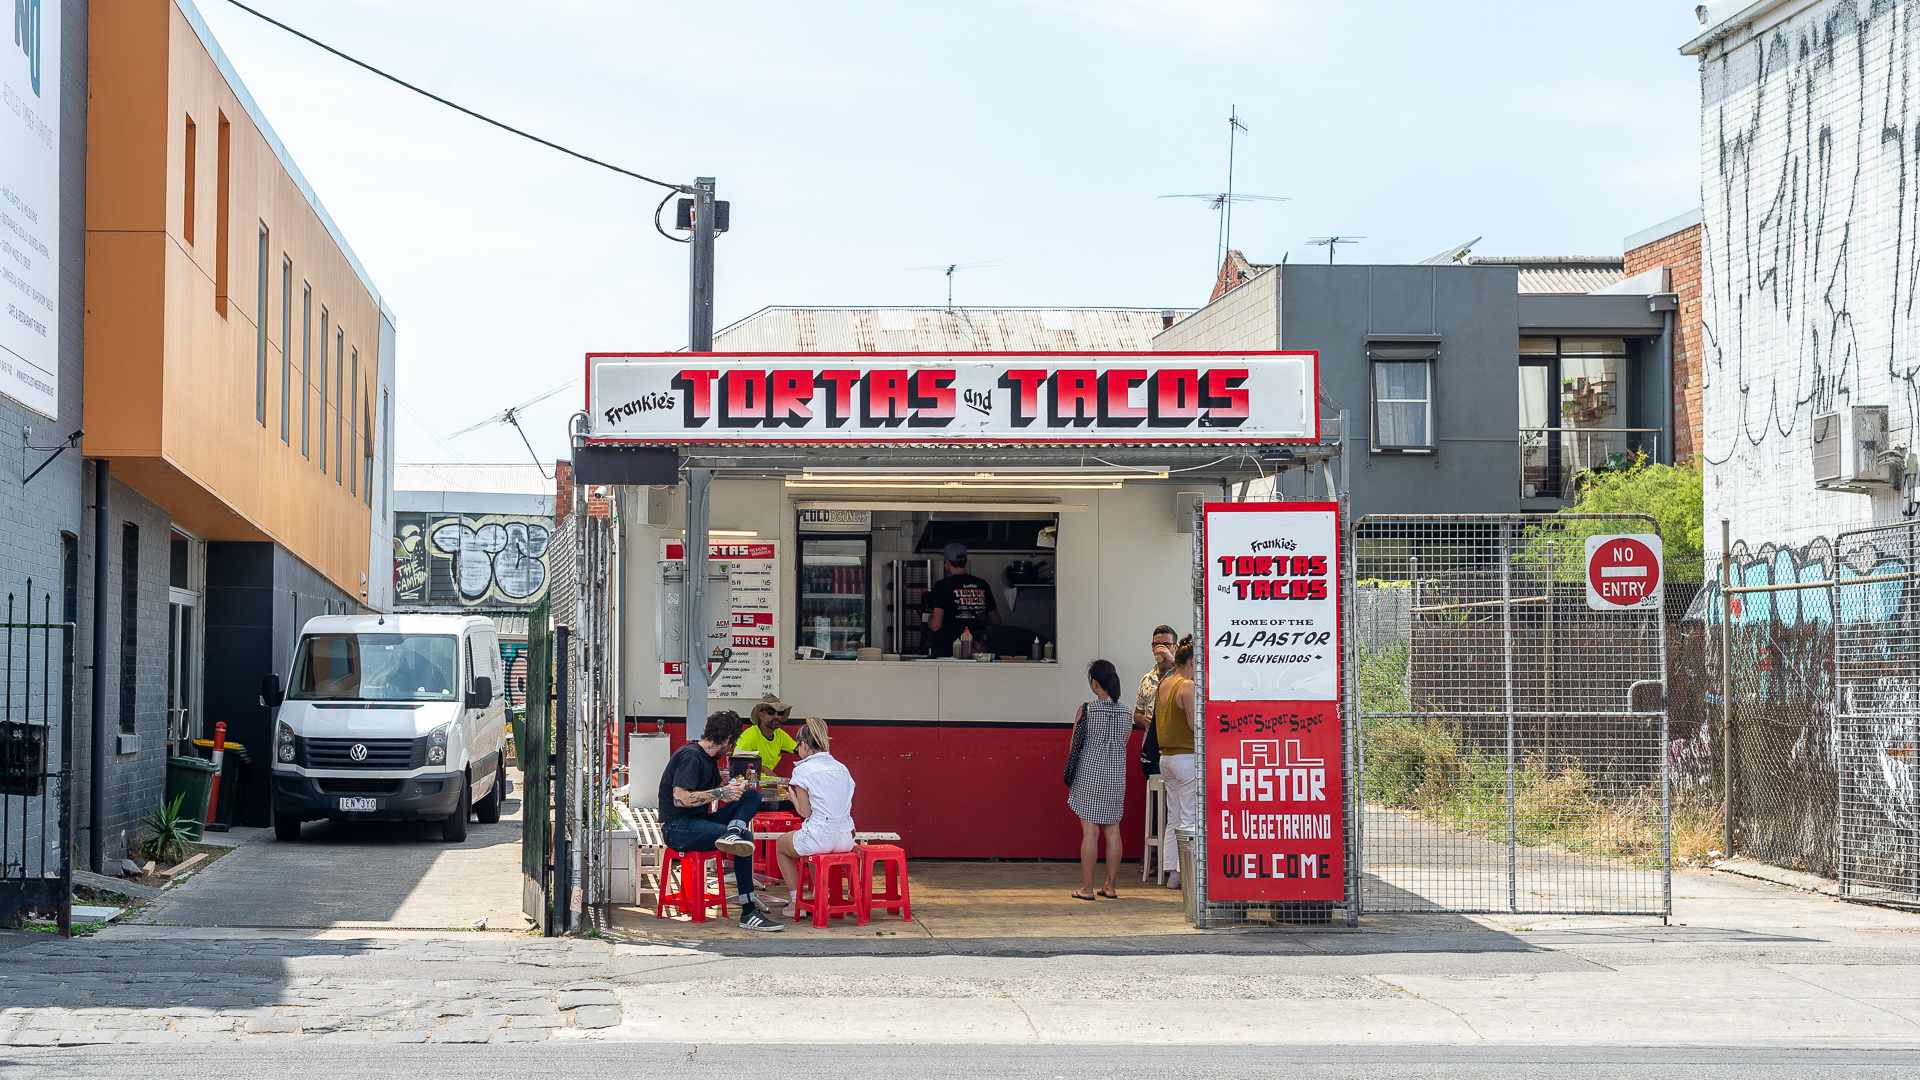 Frankie's Tortas and Tacos